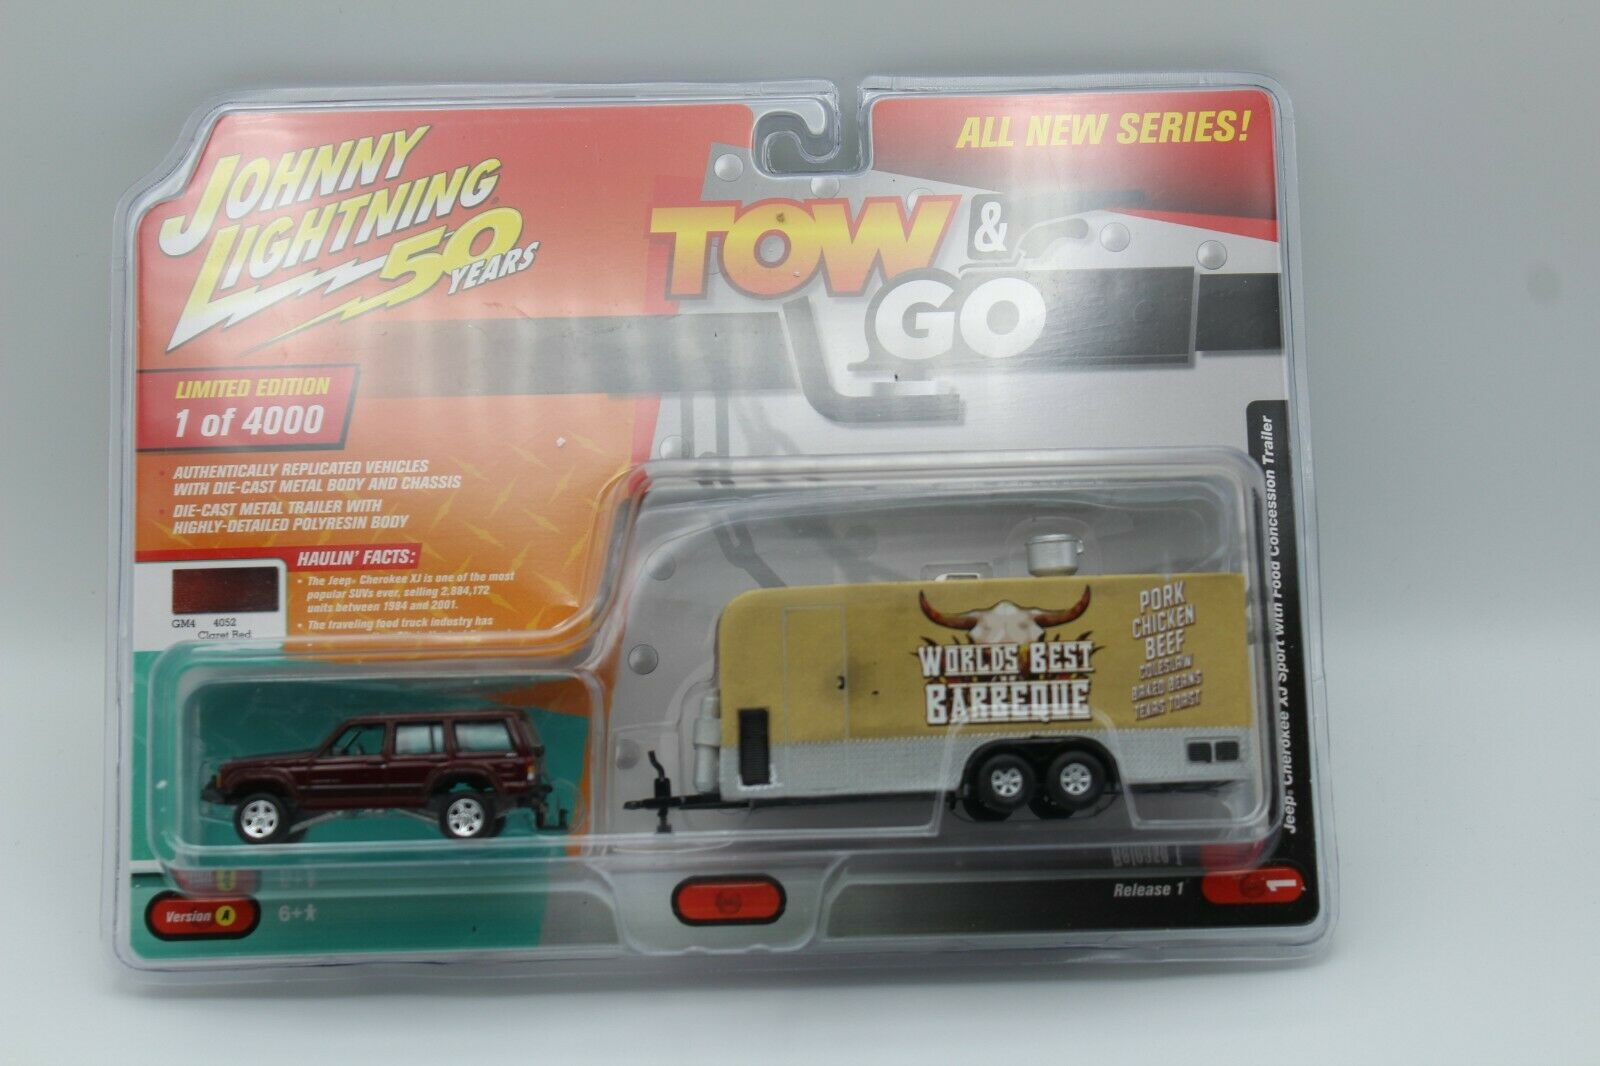 GRAY /& FOOD TRAILER 1//64 JOHNNY LIGHTNING JLTG001 B JEEP CHEROKEE XJ SPORT MET